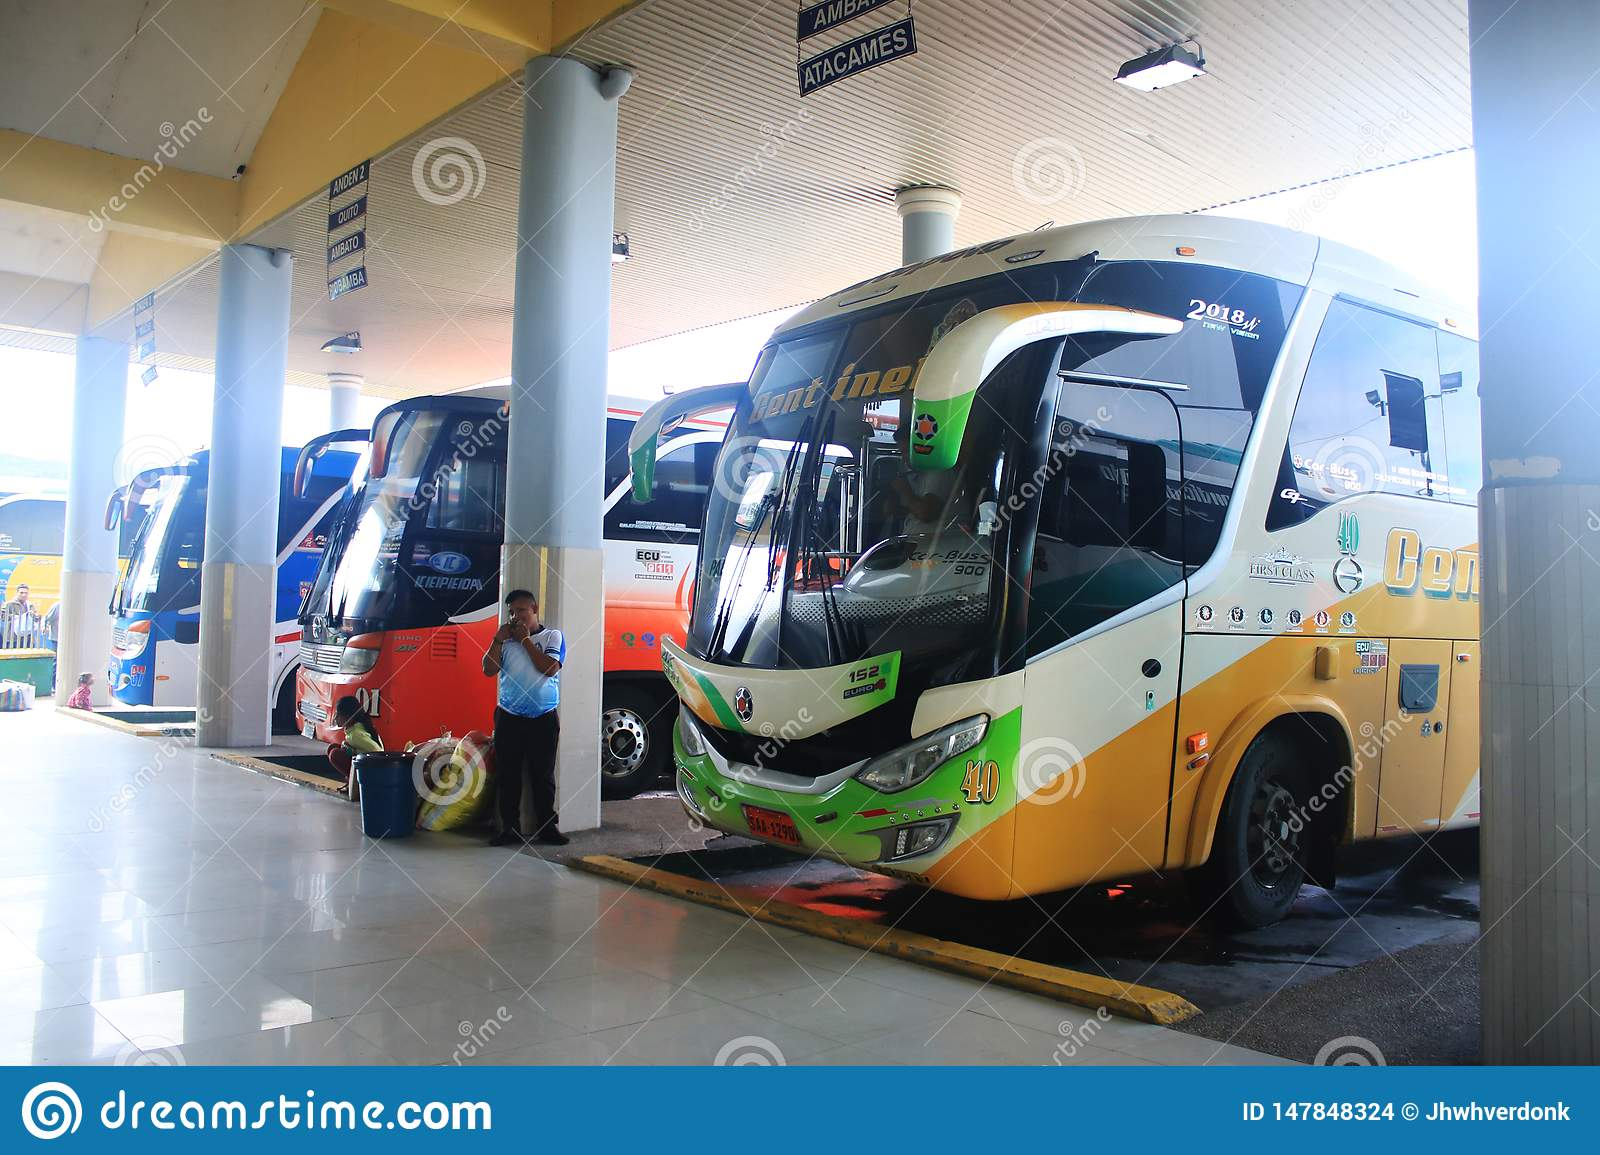 Puyo Ecuador 5 5 2019 Public Transport All Buses To Various Directions Lined Up Editorial Stock Image Image Of Street Public 147848324